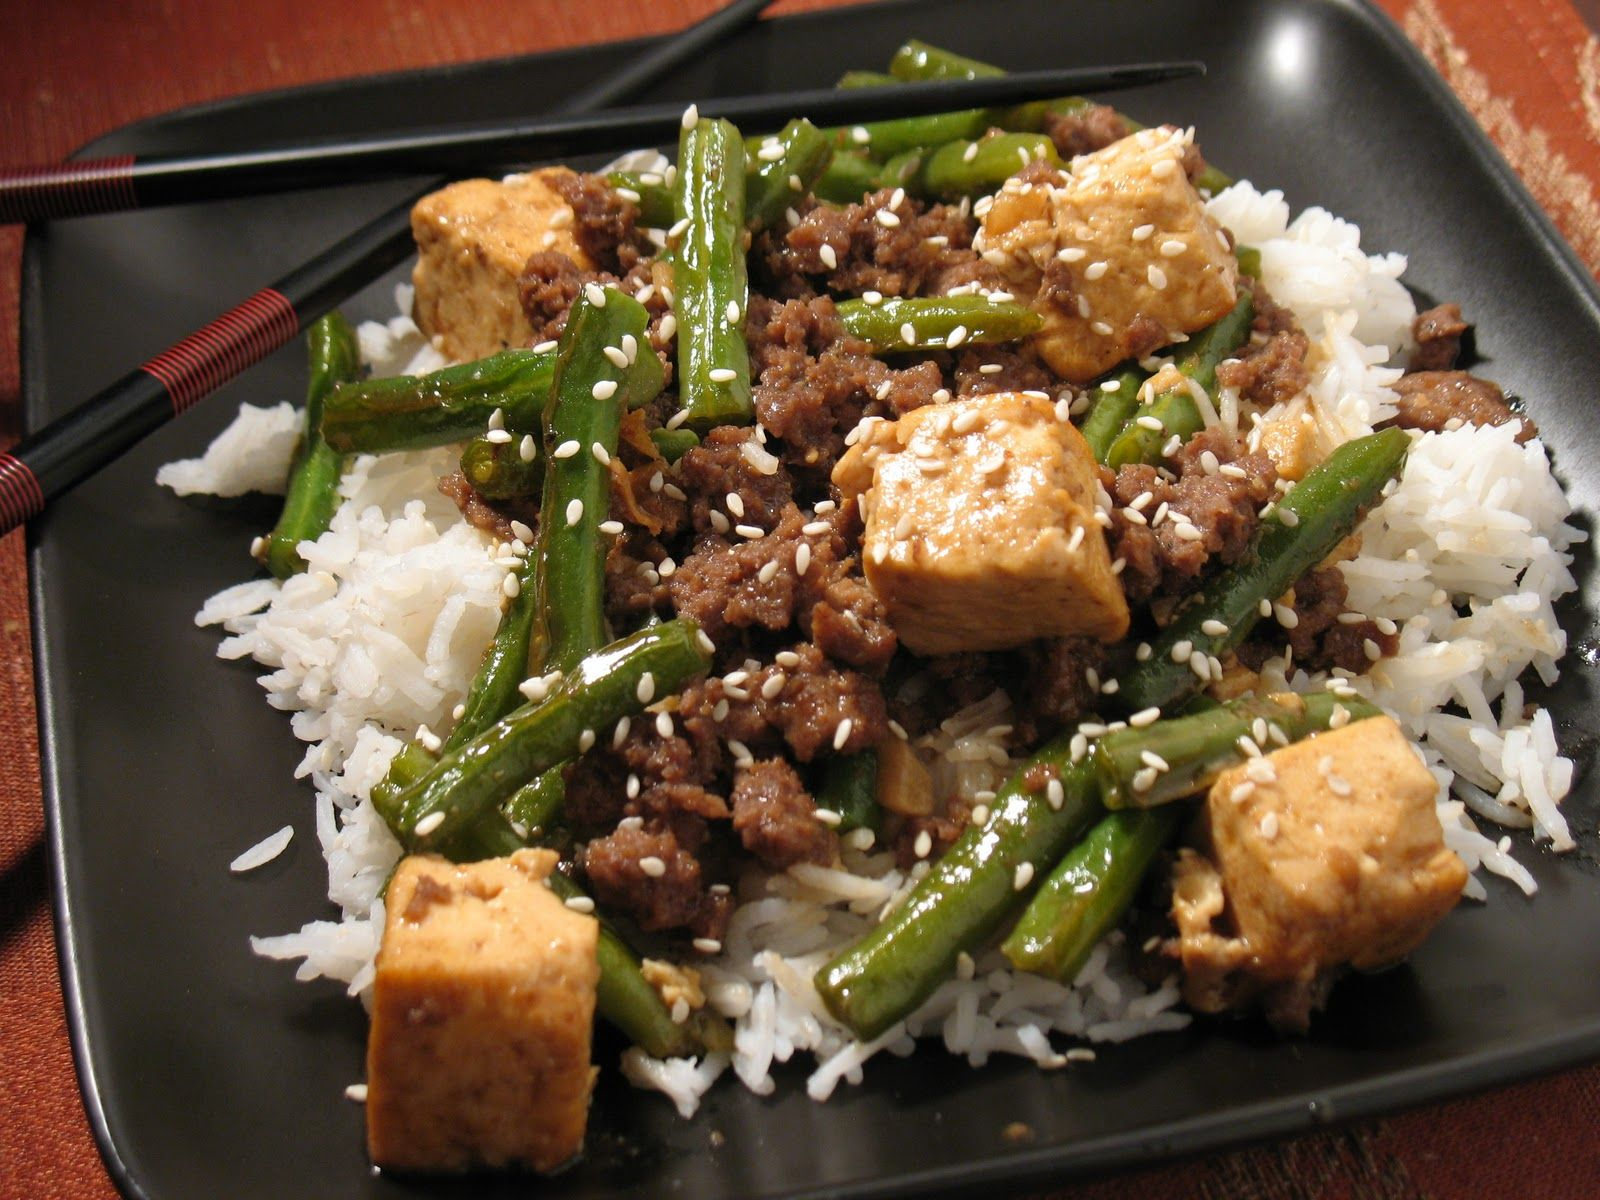 Ground Bison Green Beans Swap White Rice For Brown Or Quinoa Rice Add A Little Low Sodium Bison Recipes Ground Bison Recipes Healthy Ground Bison Recipes